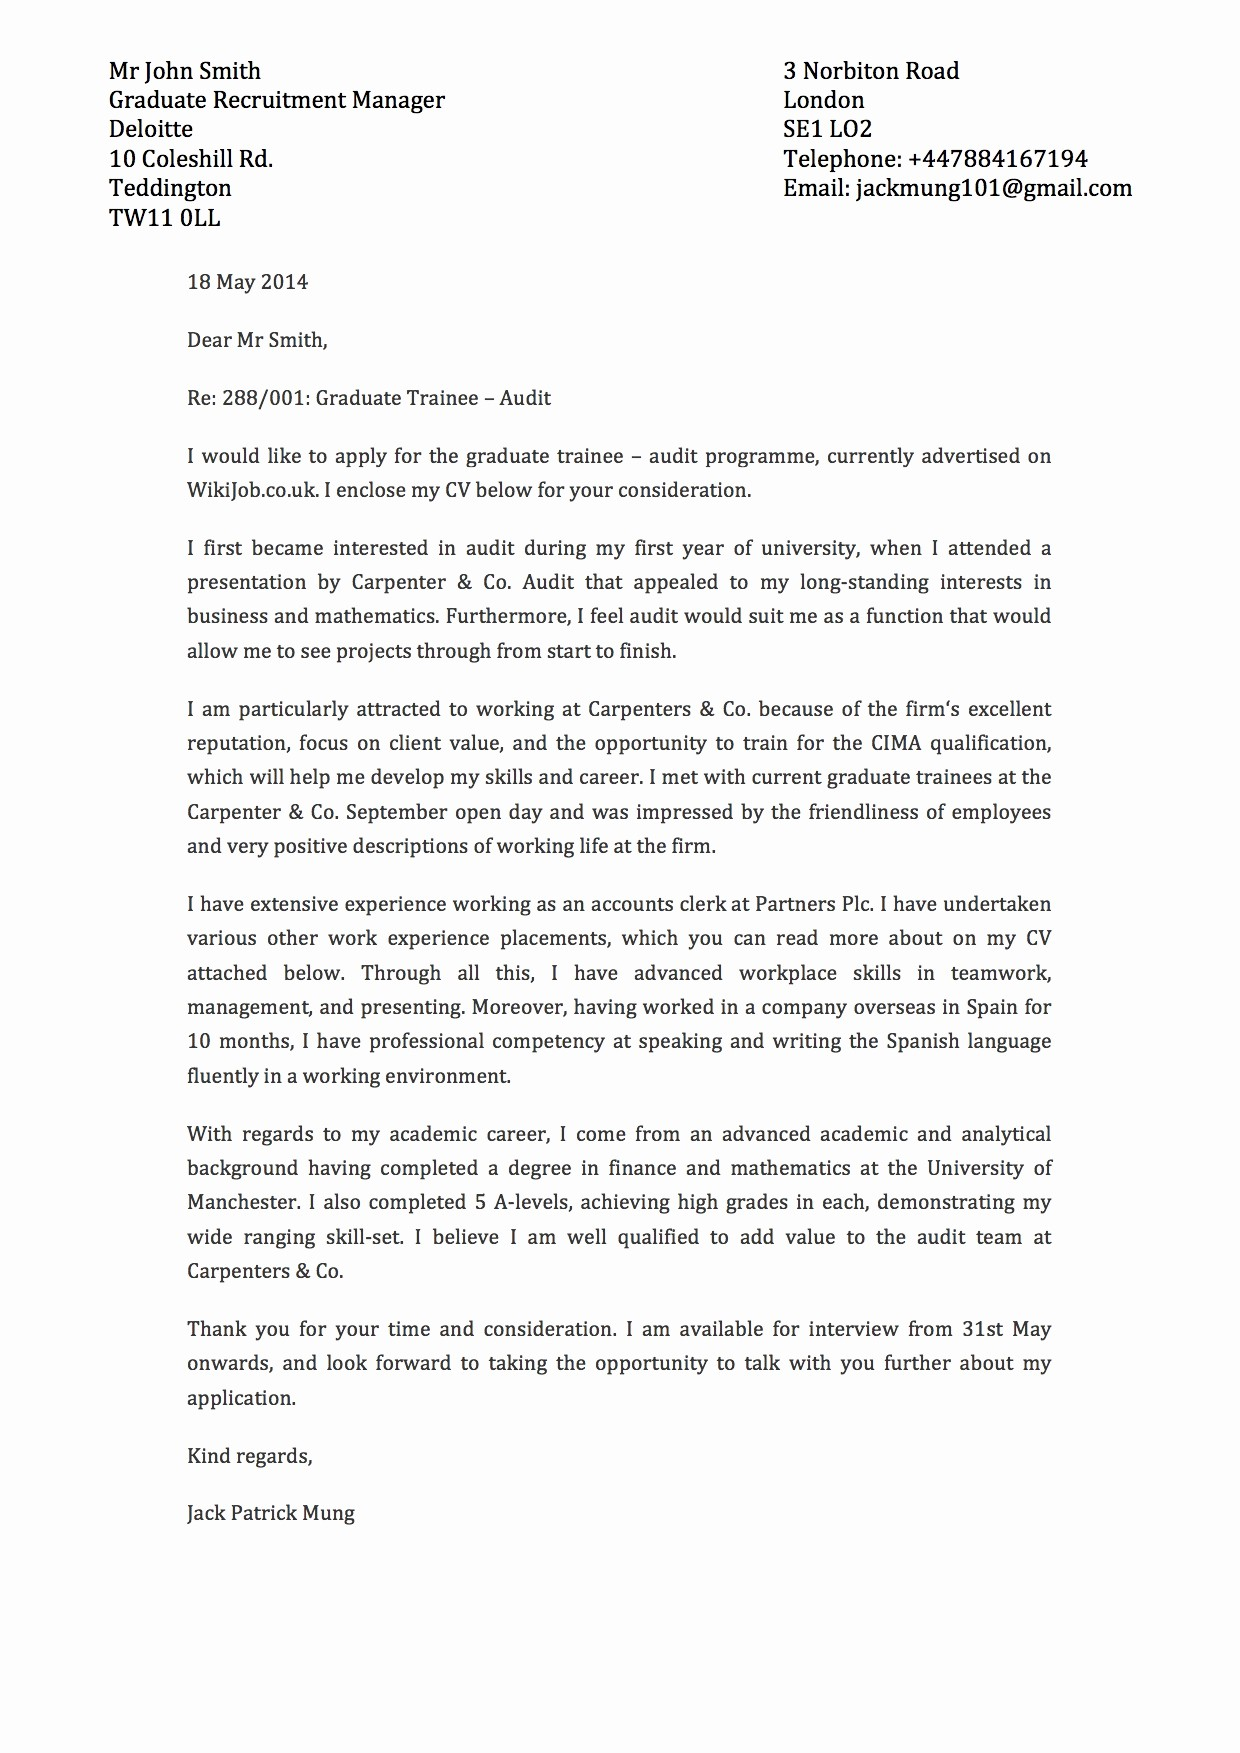 Template Of A Cover Letter Inspirational Templates and Examples